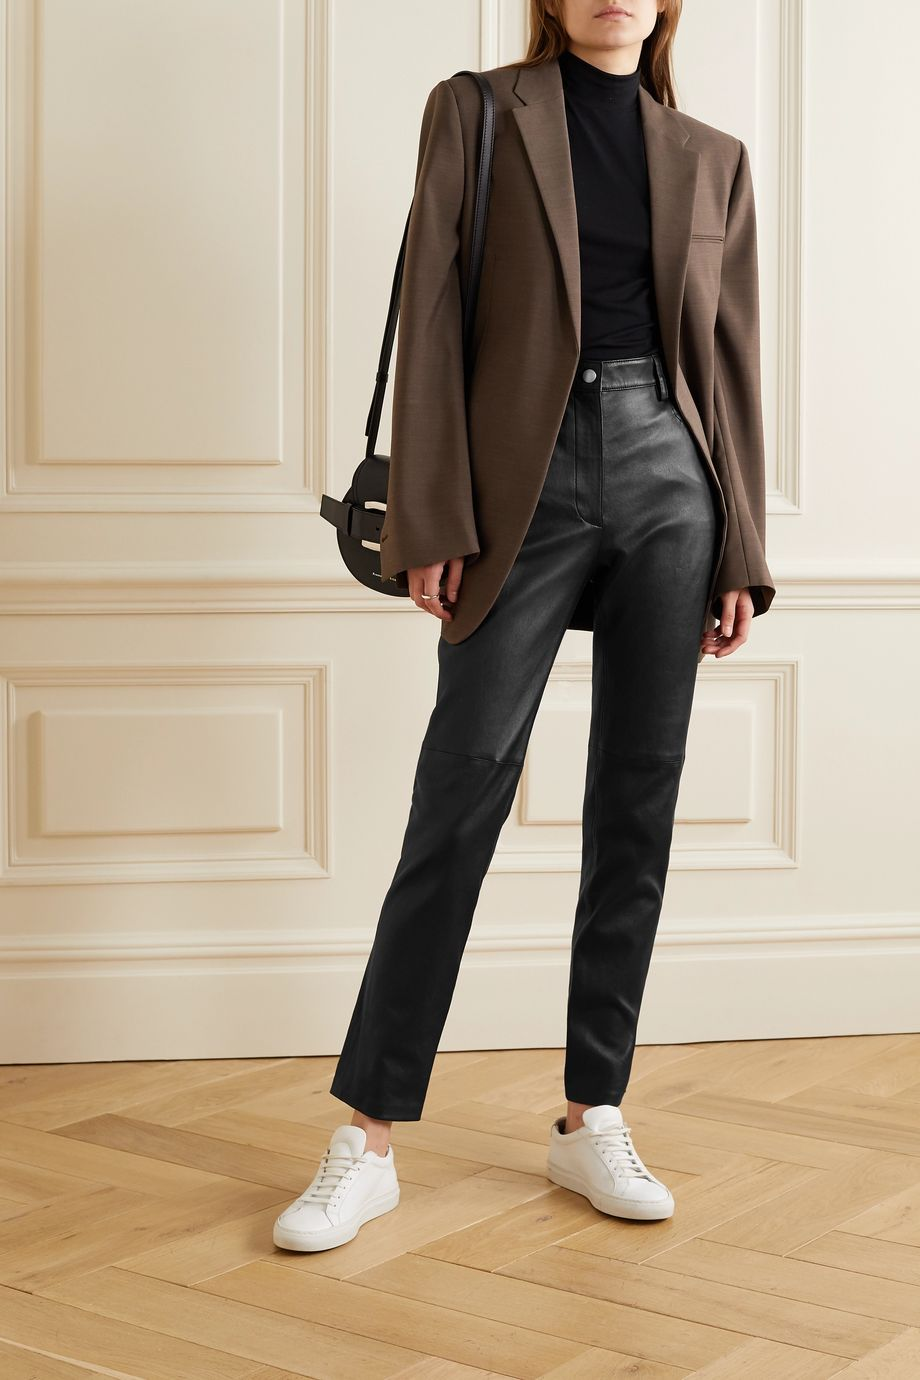 Joseph Cindy paneled leather straight-leg pants